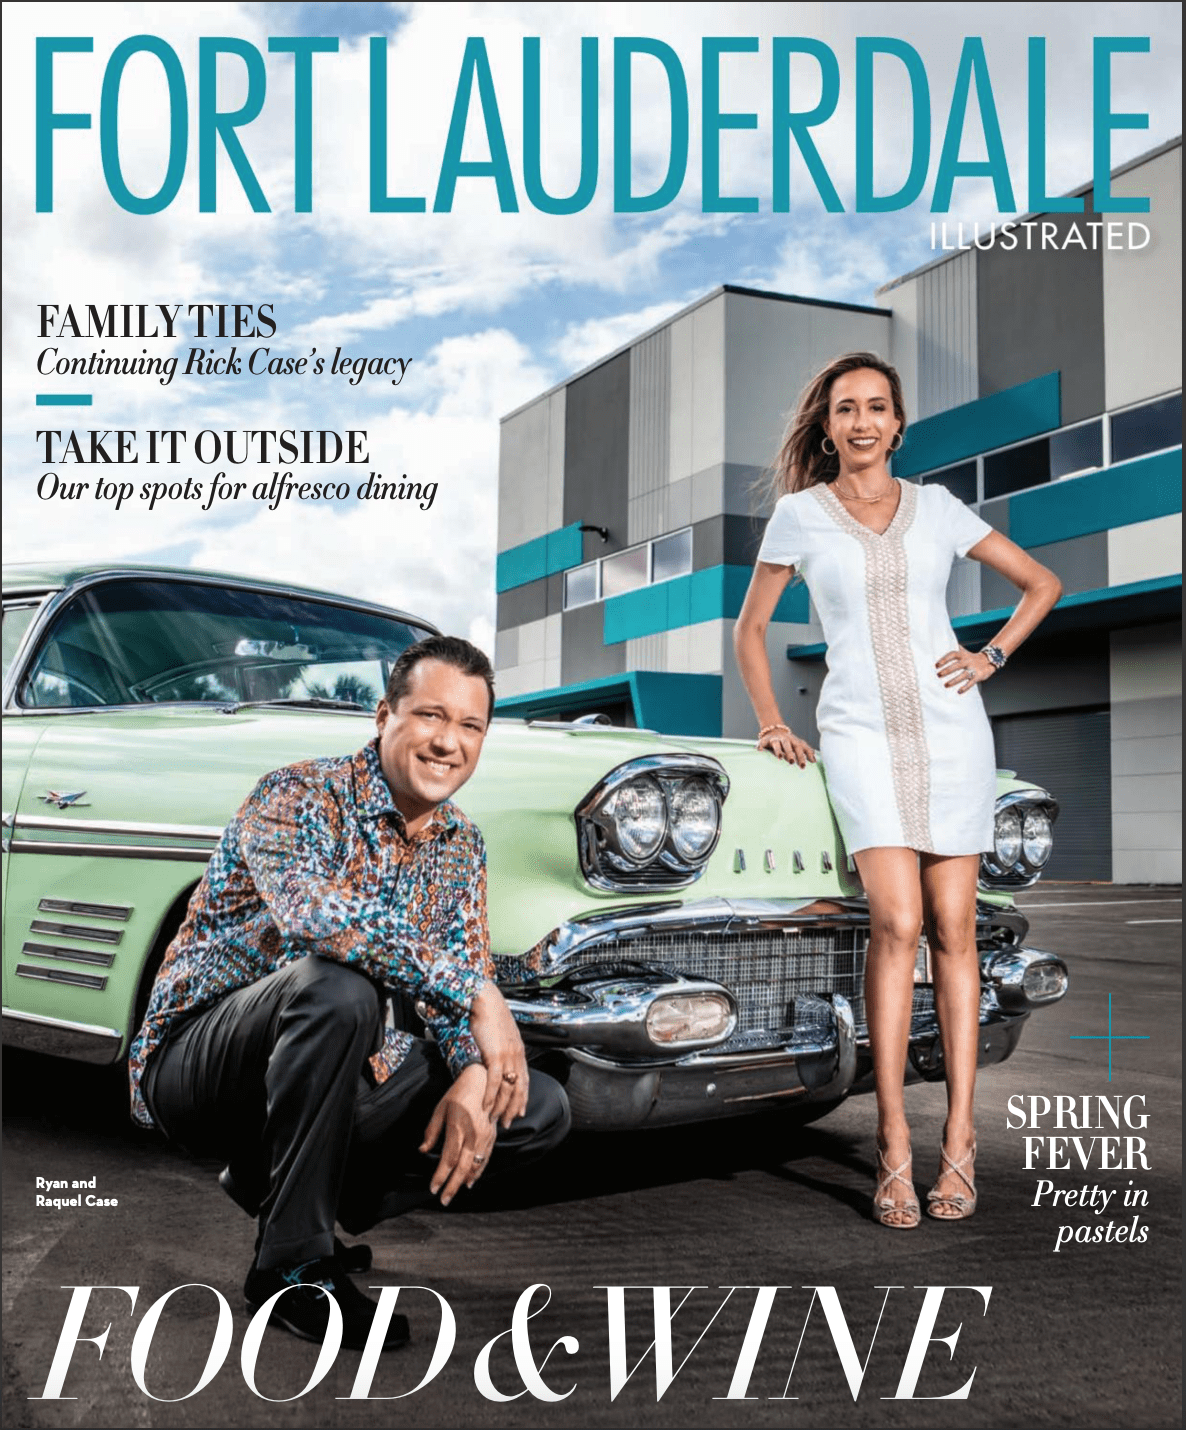 Fort Lauderdale Illustrated February 2021